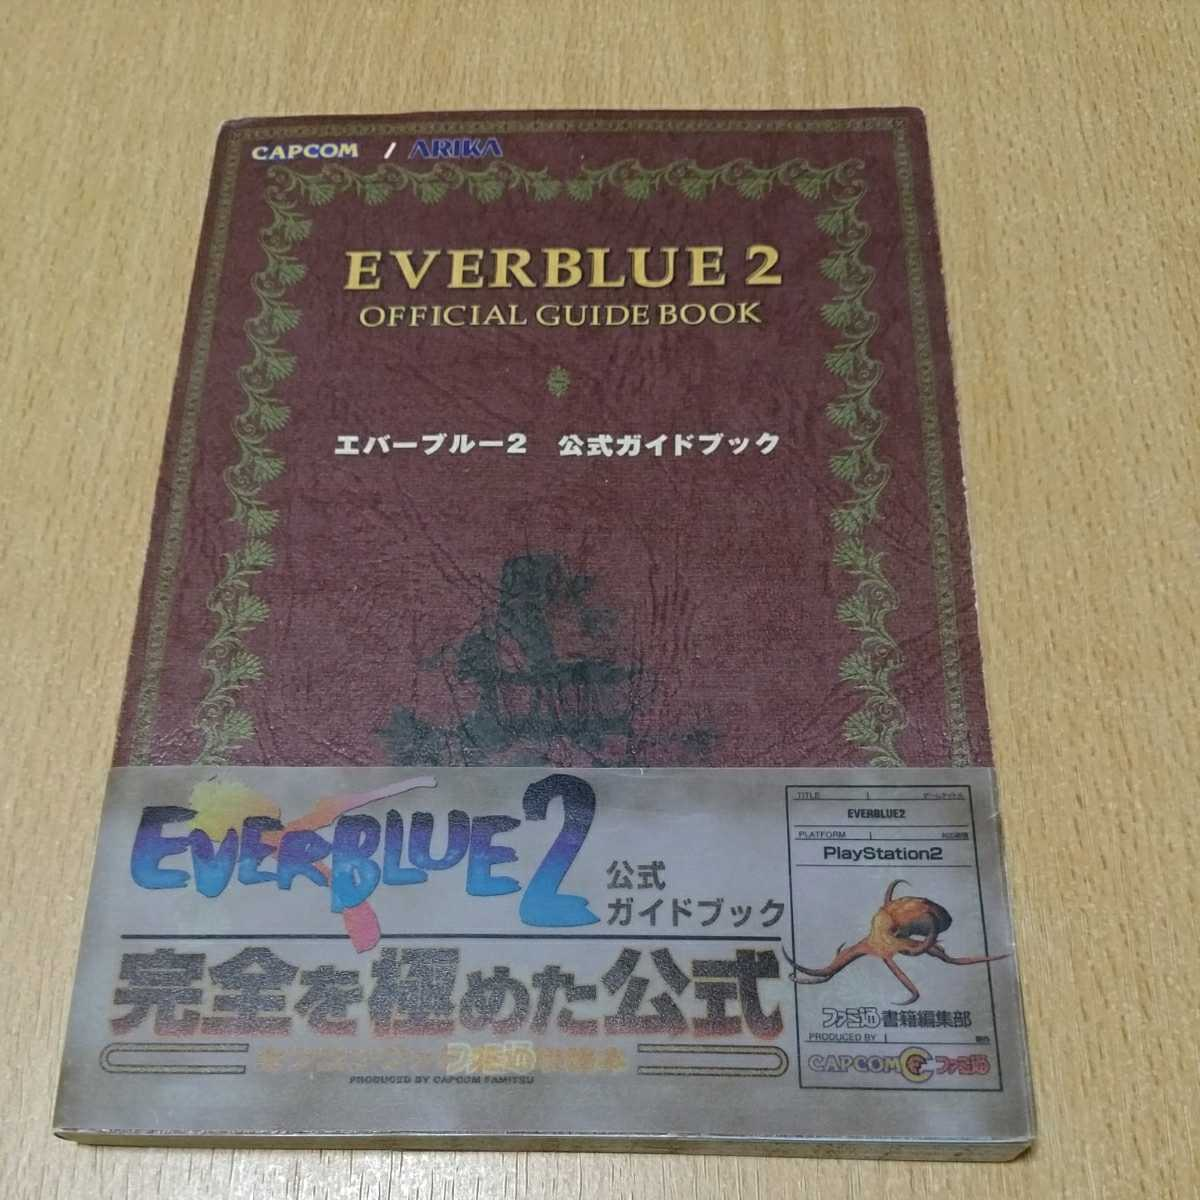 【PS2攻略本】エバーブルー2 公式ガイドブック 帯付き EVER BLUE2 OFFICIAL GUIDE BOOK CAPCOM ARIKA_画像1